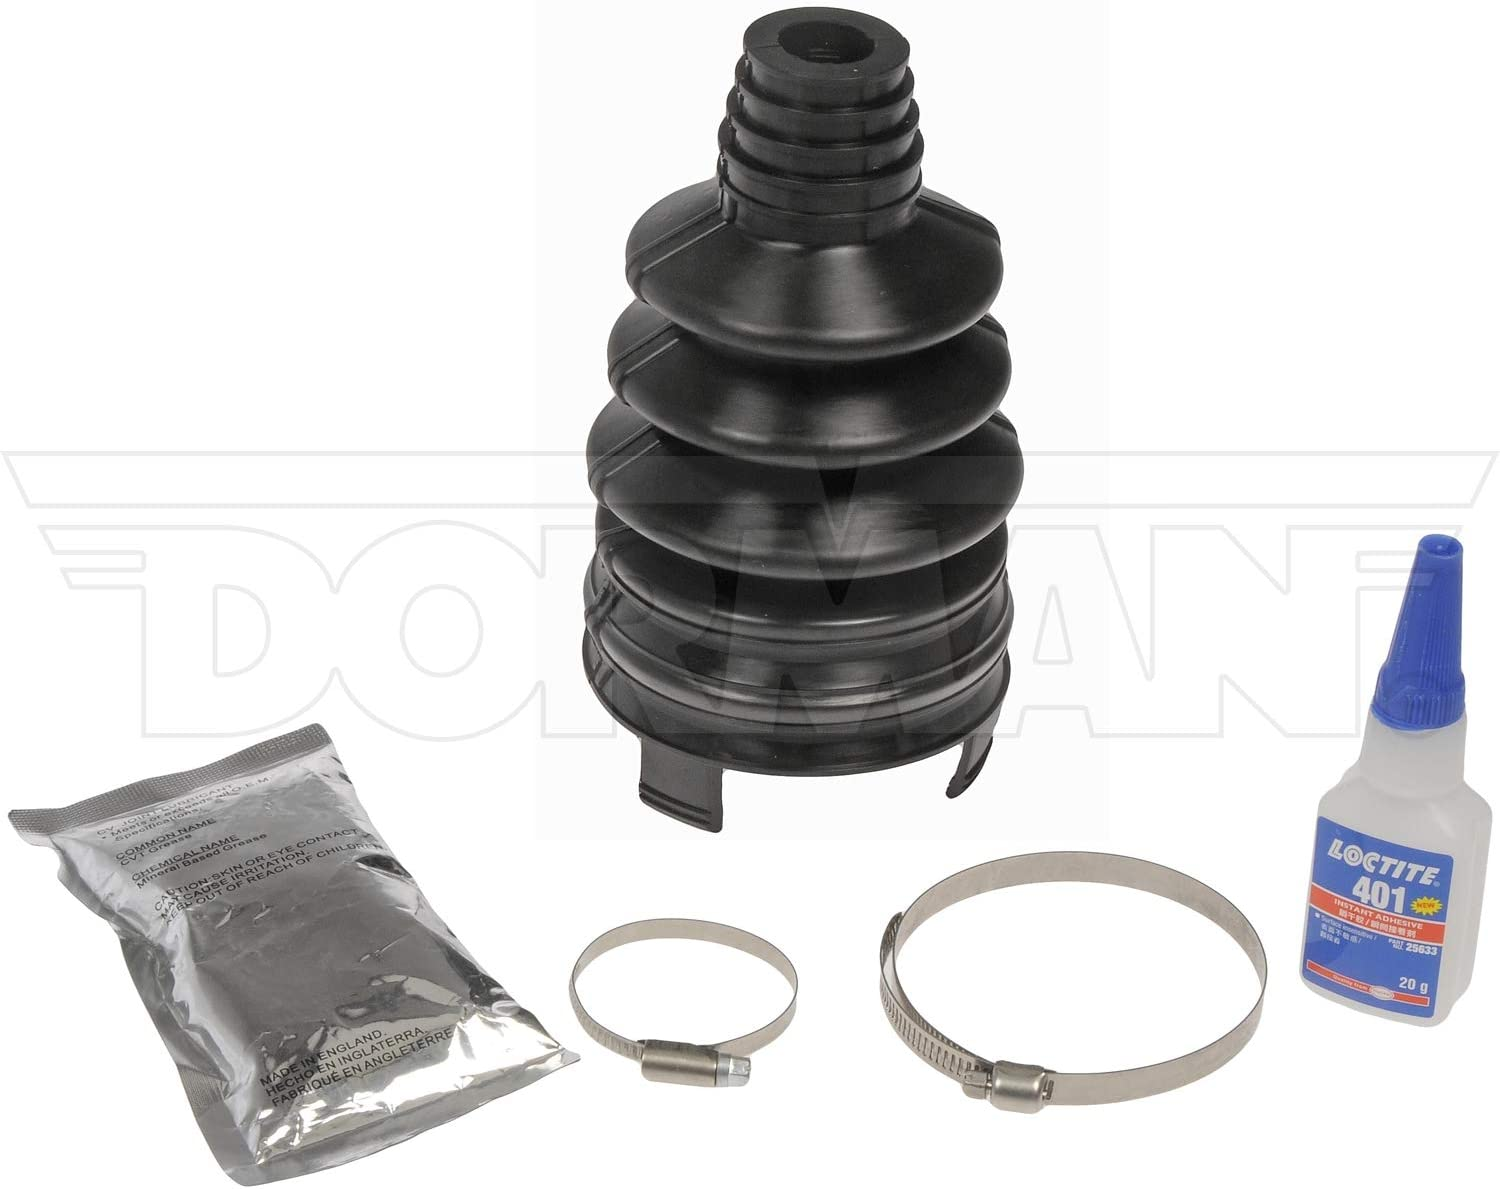 2X UNIVERSAL STRETCH DRIVE SHAFT GAITER CV JOINT BOOT KIT /& X1 FITTING CONE